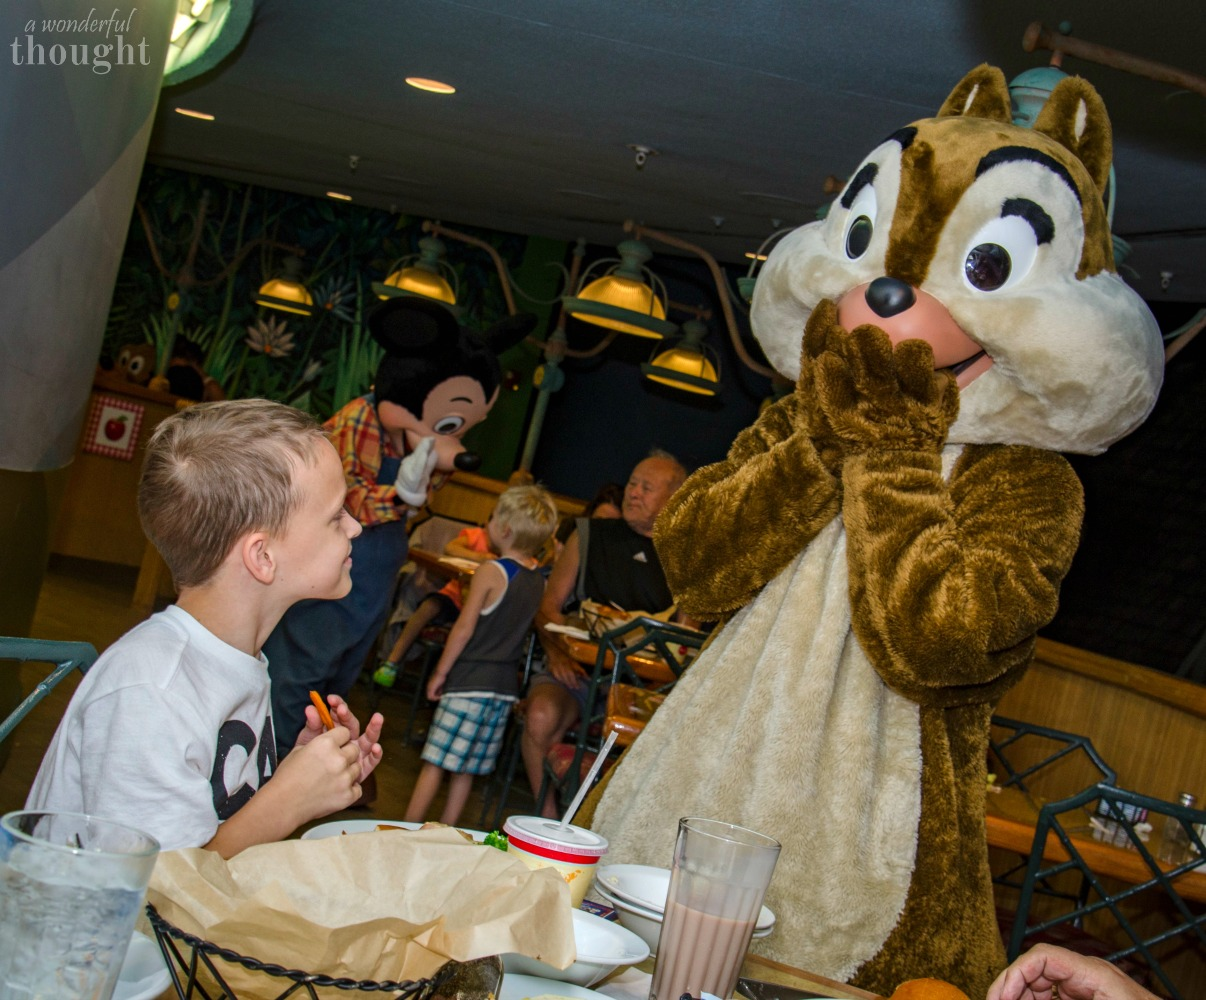 Our 10 Favorite Disney World Table Service Restaurants - A Wonderful ...